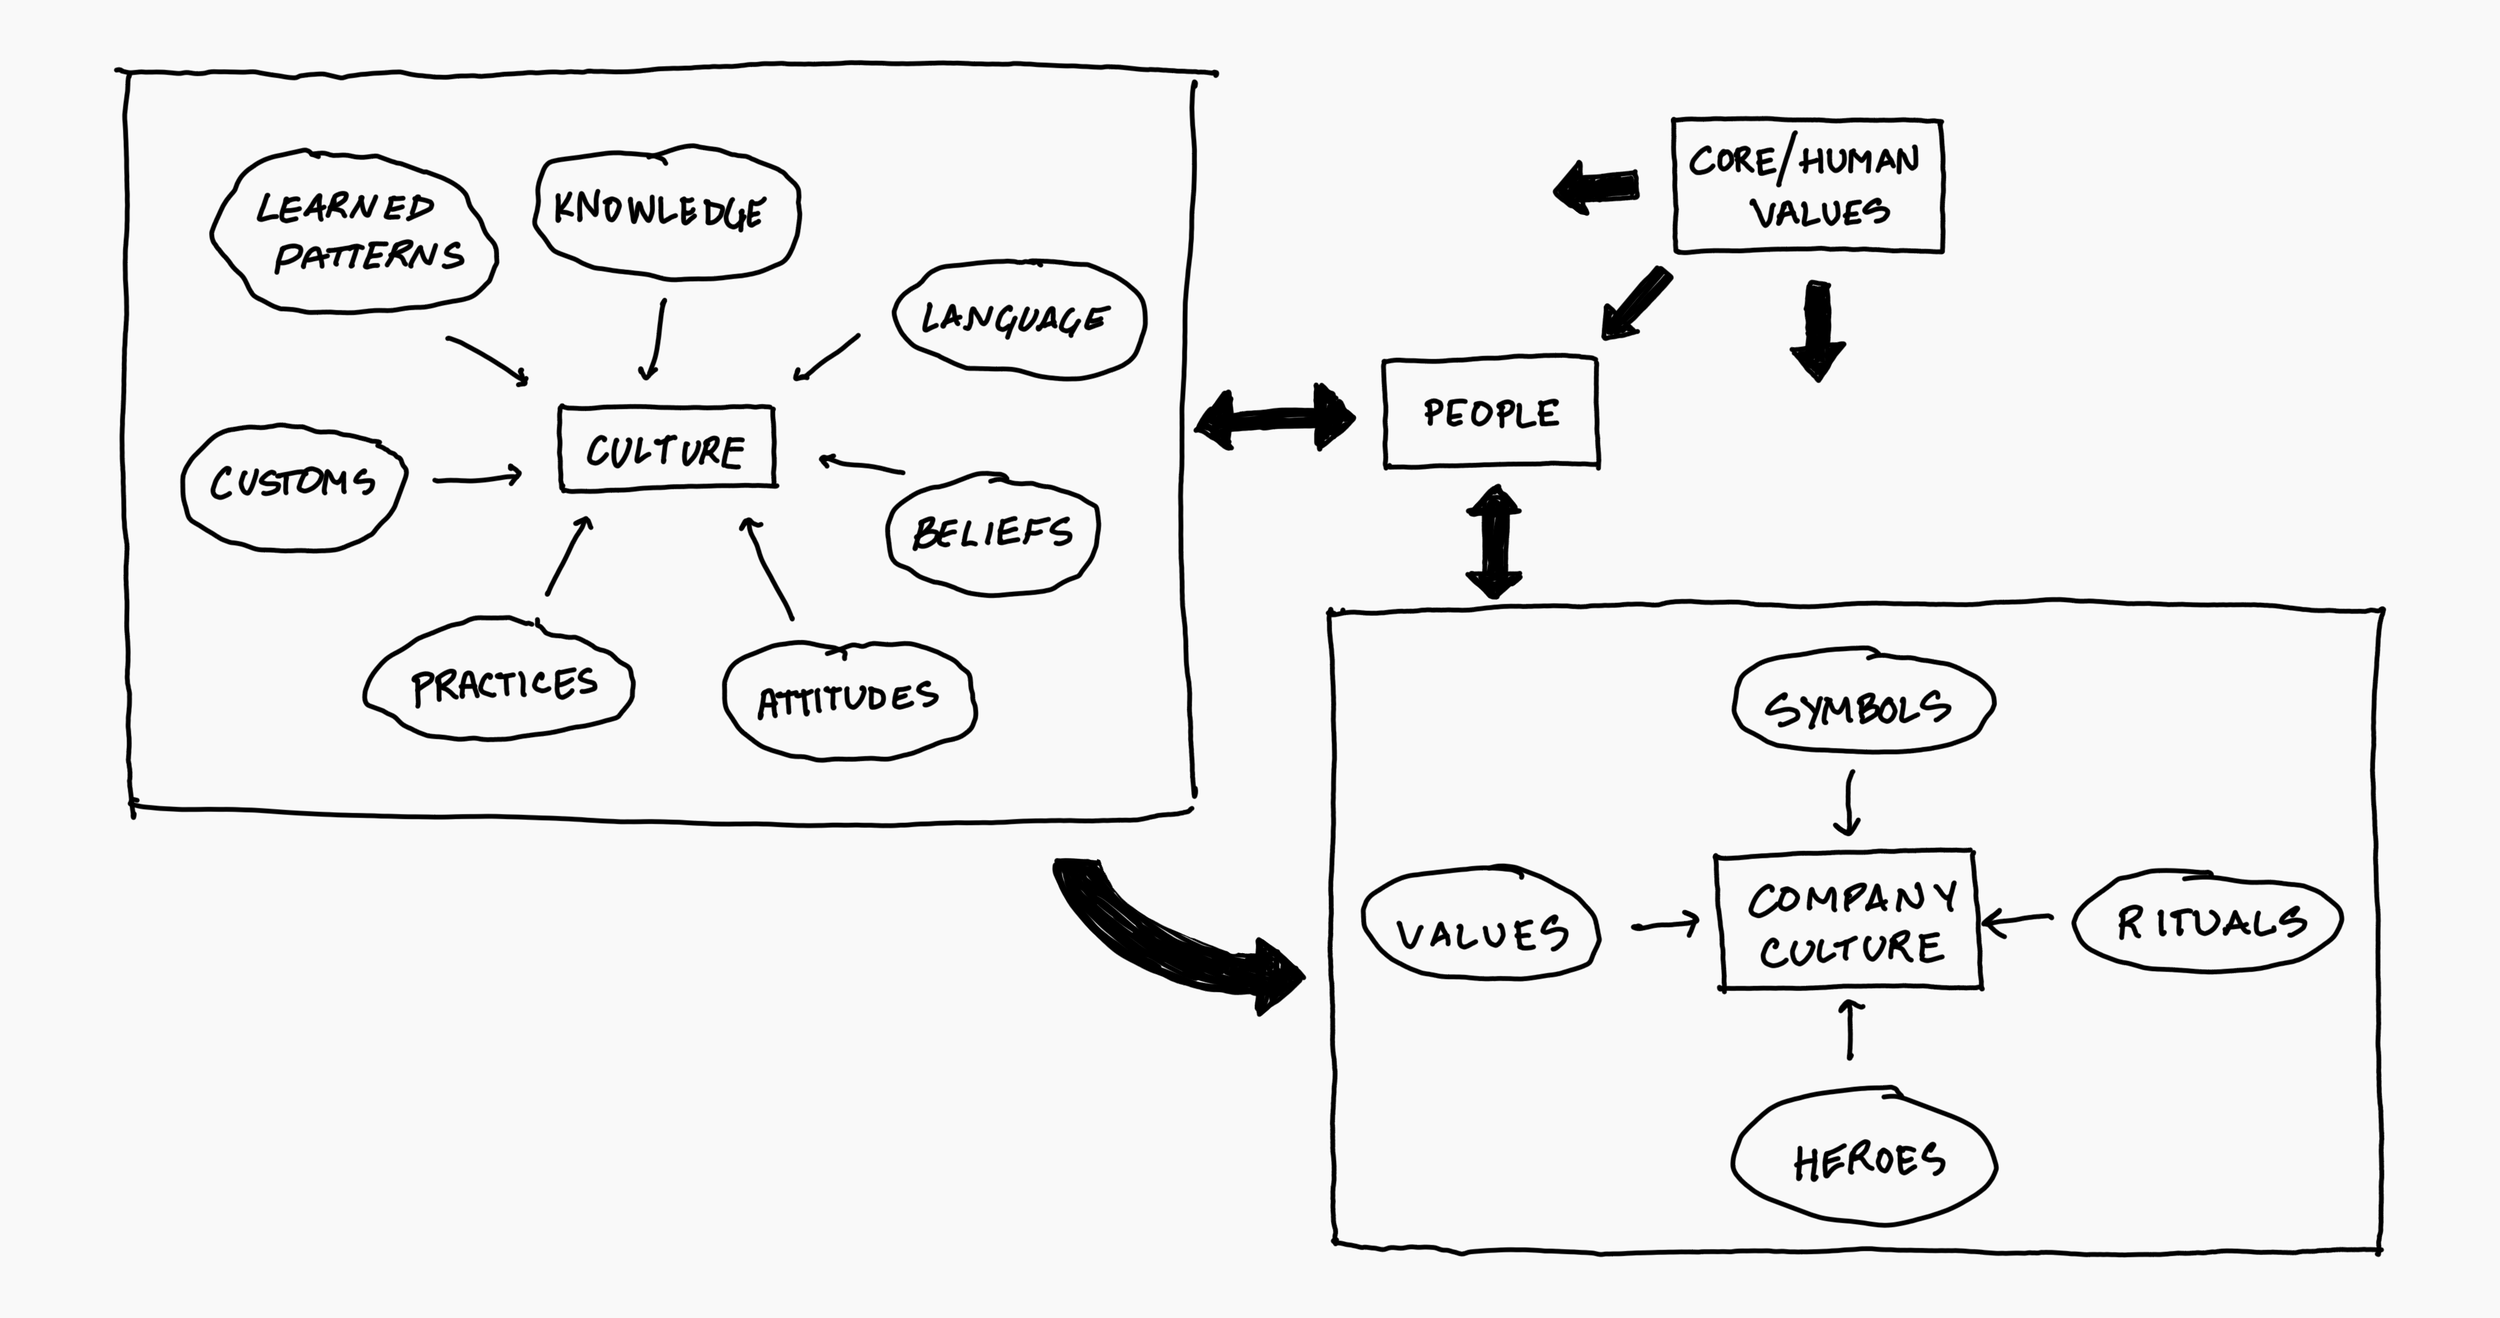 I attempted to capture everything that influences cultures described in  Global UX, Chapter 3